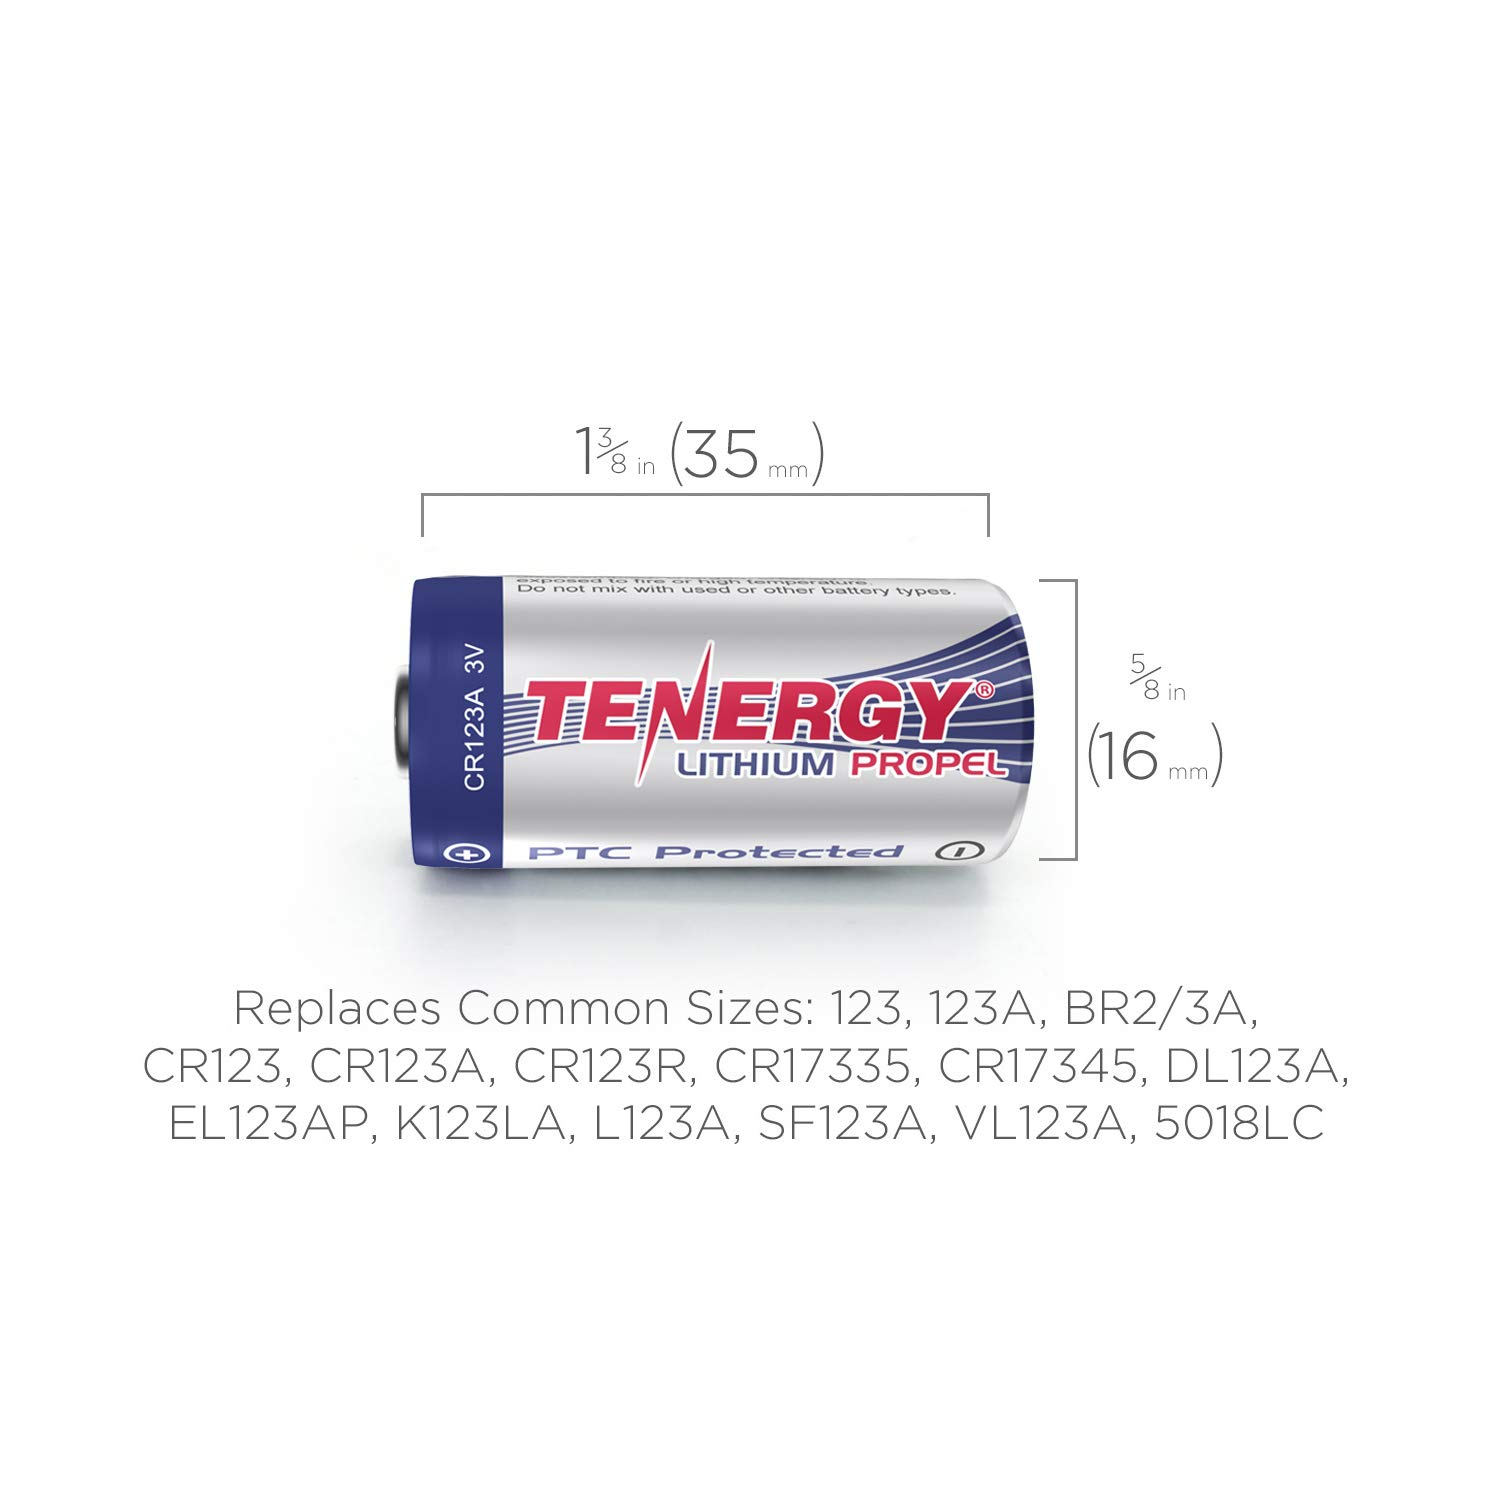 Tenergy Propel 1500mAh 3V CR123A Lithium Battery, High Performance CR123A Cell Batteries PTC Protected for Cameras, Flashlight Replacement CR123A Batteries, 40-Pack by Tenergy (Image #5)